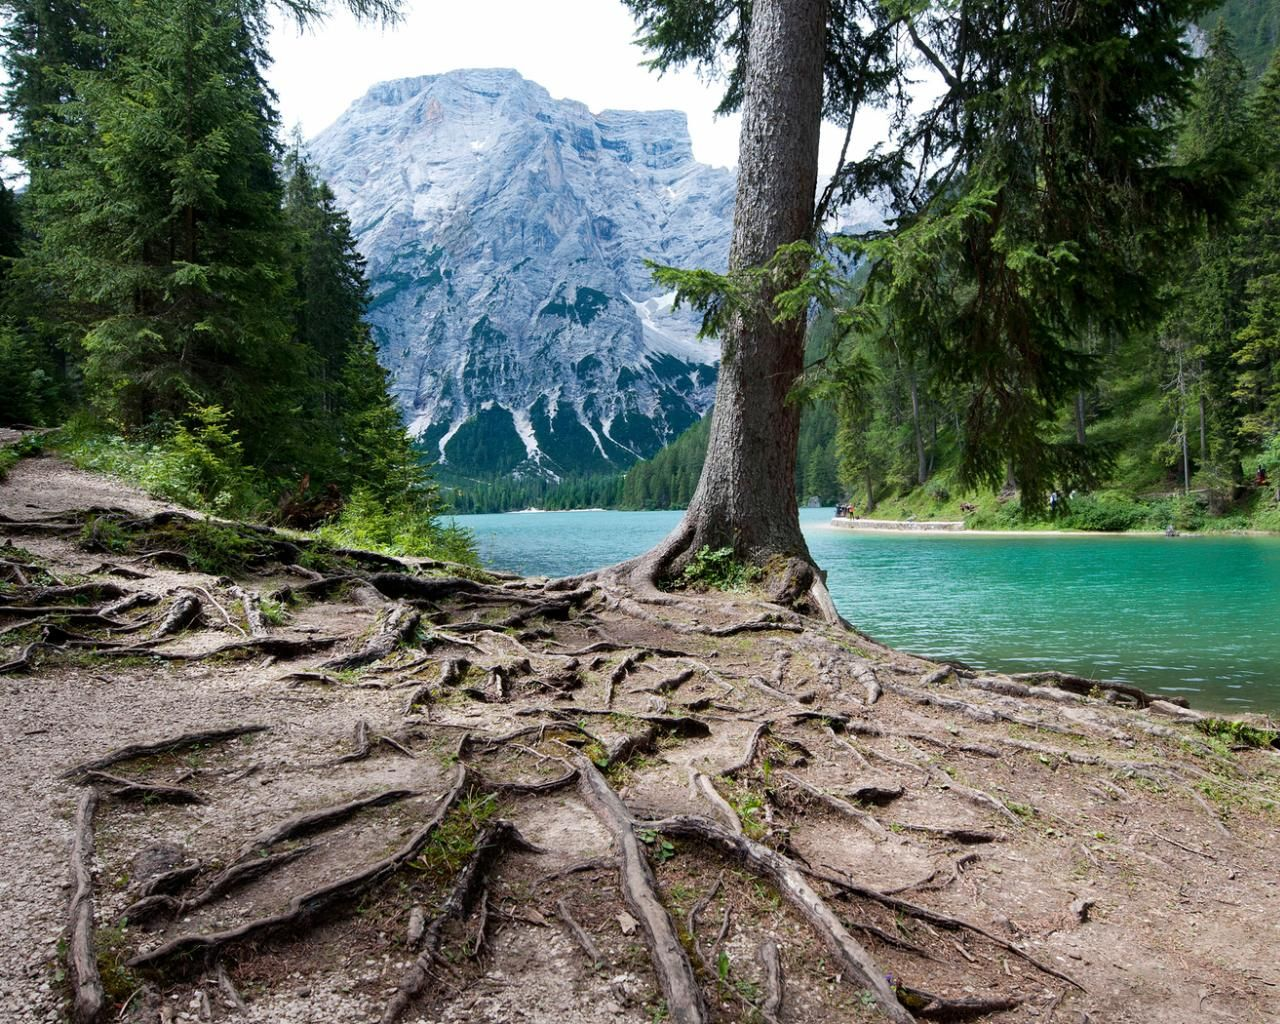 lake_mountains_forest_trees_the_roots_italy_1280x1024_hd-wallpaper-358290.jpg (1280×1024)